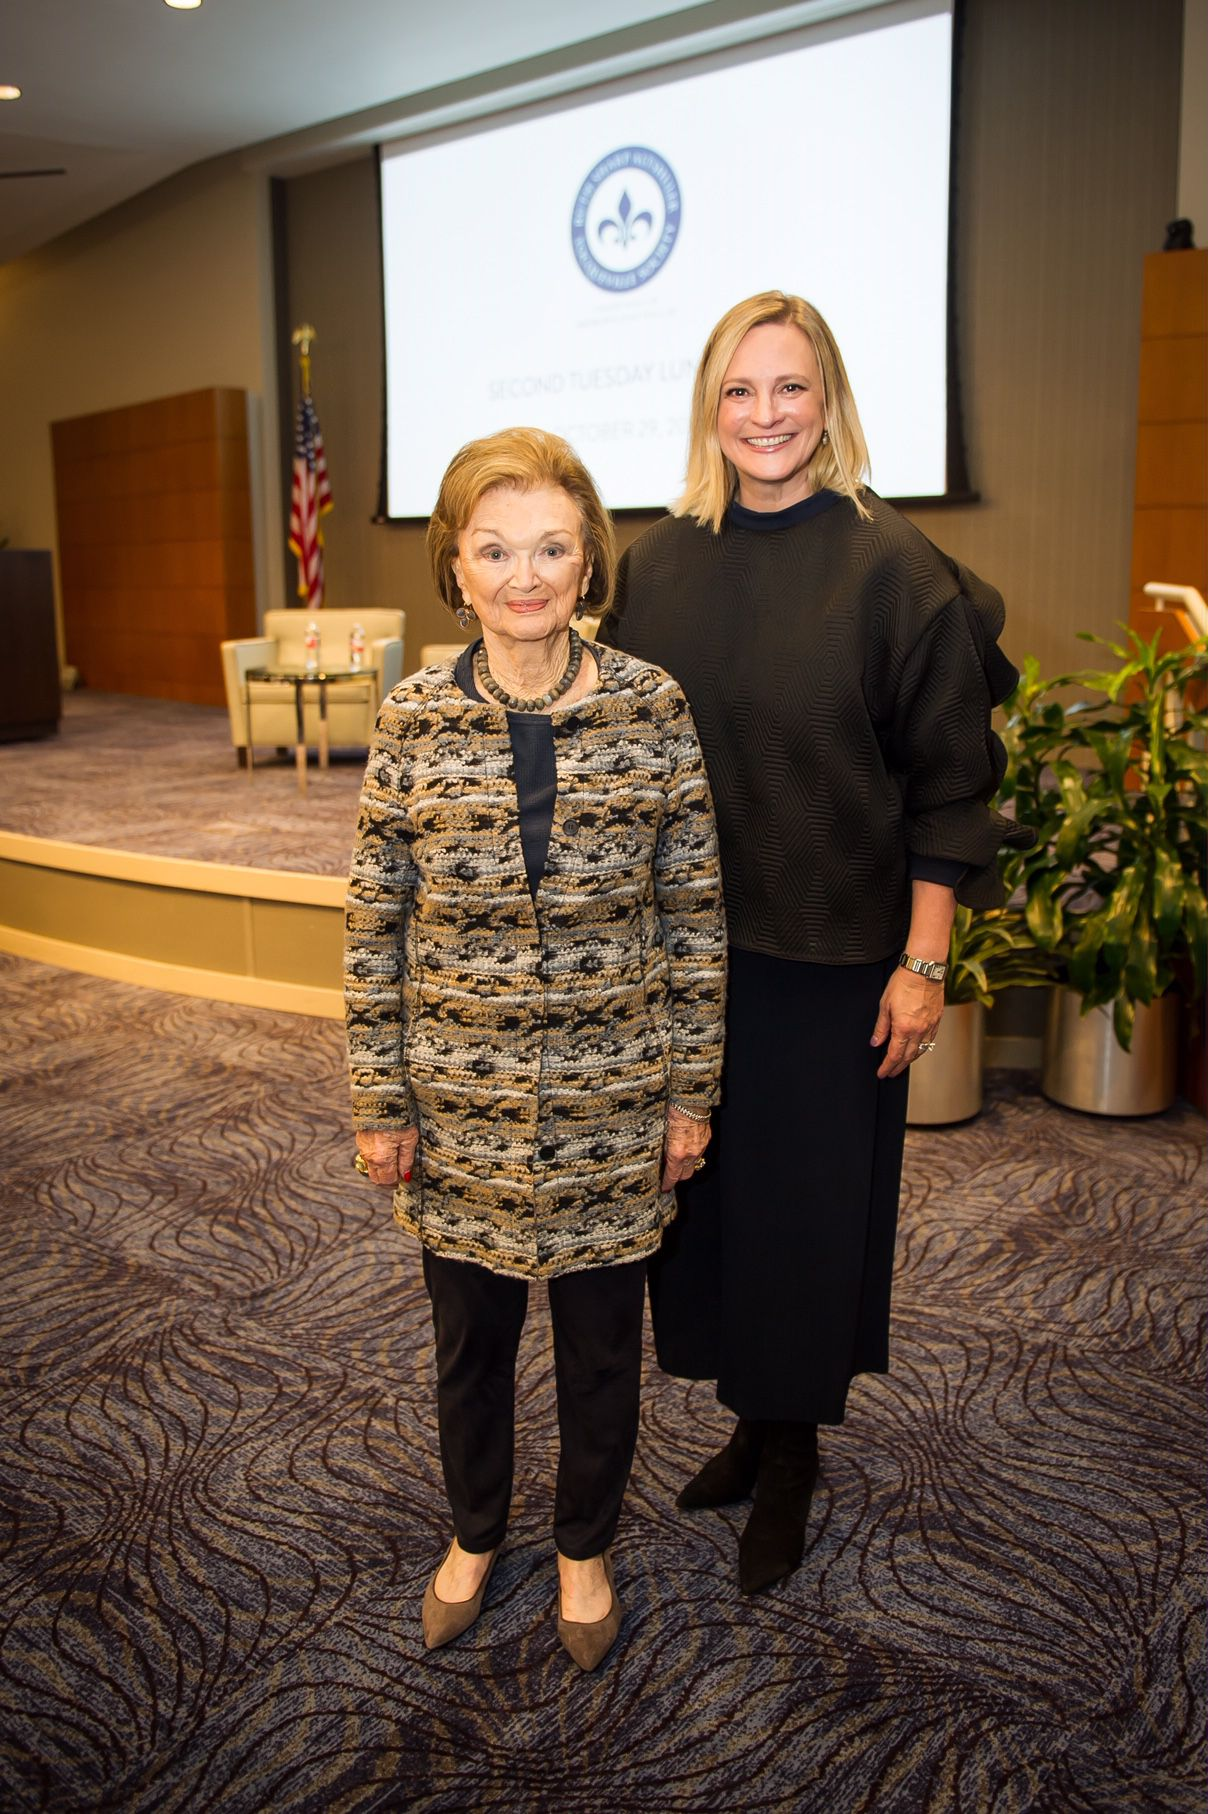 Mary Anne Cree (left) with Jennifer Sampson, CEO of the United Way of Metropolitan Dallas, at the Tocqueville Society luncheon at the Federal Reserve Bank of Dallas on Oct. 29, 2018.